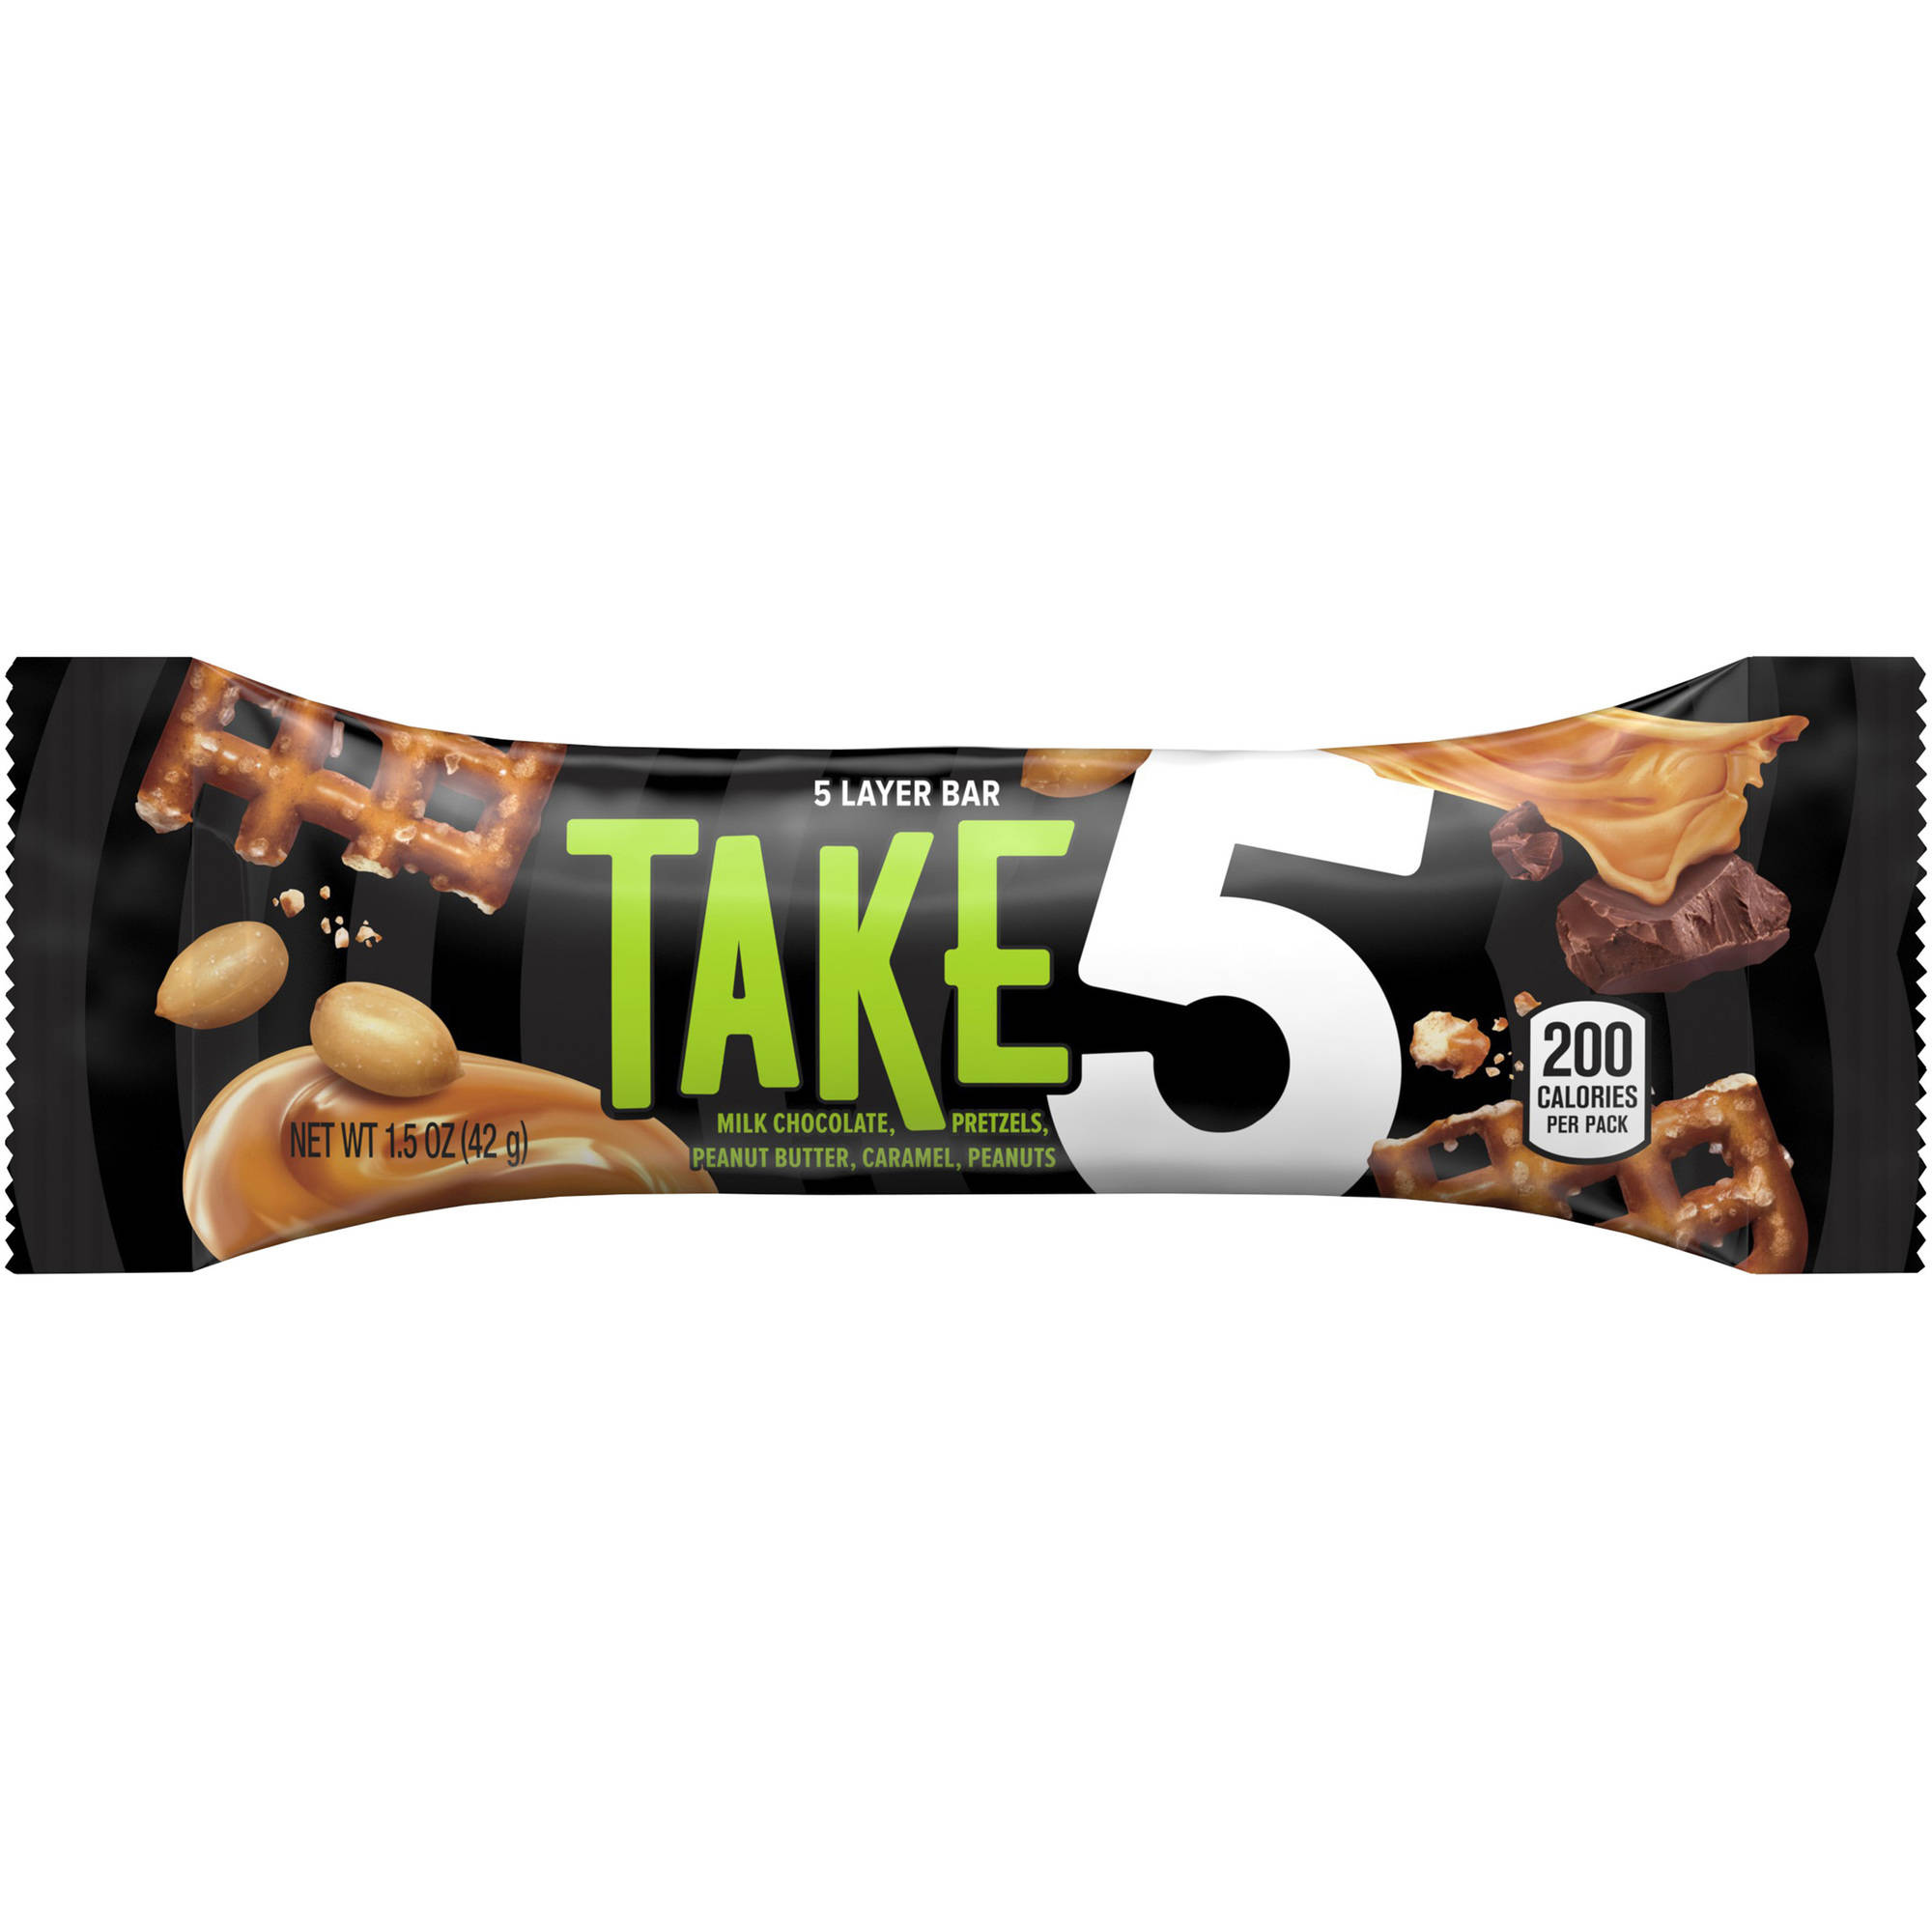 Take 5 5-Layer Candy Bar, 1.5 oz, 2 count